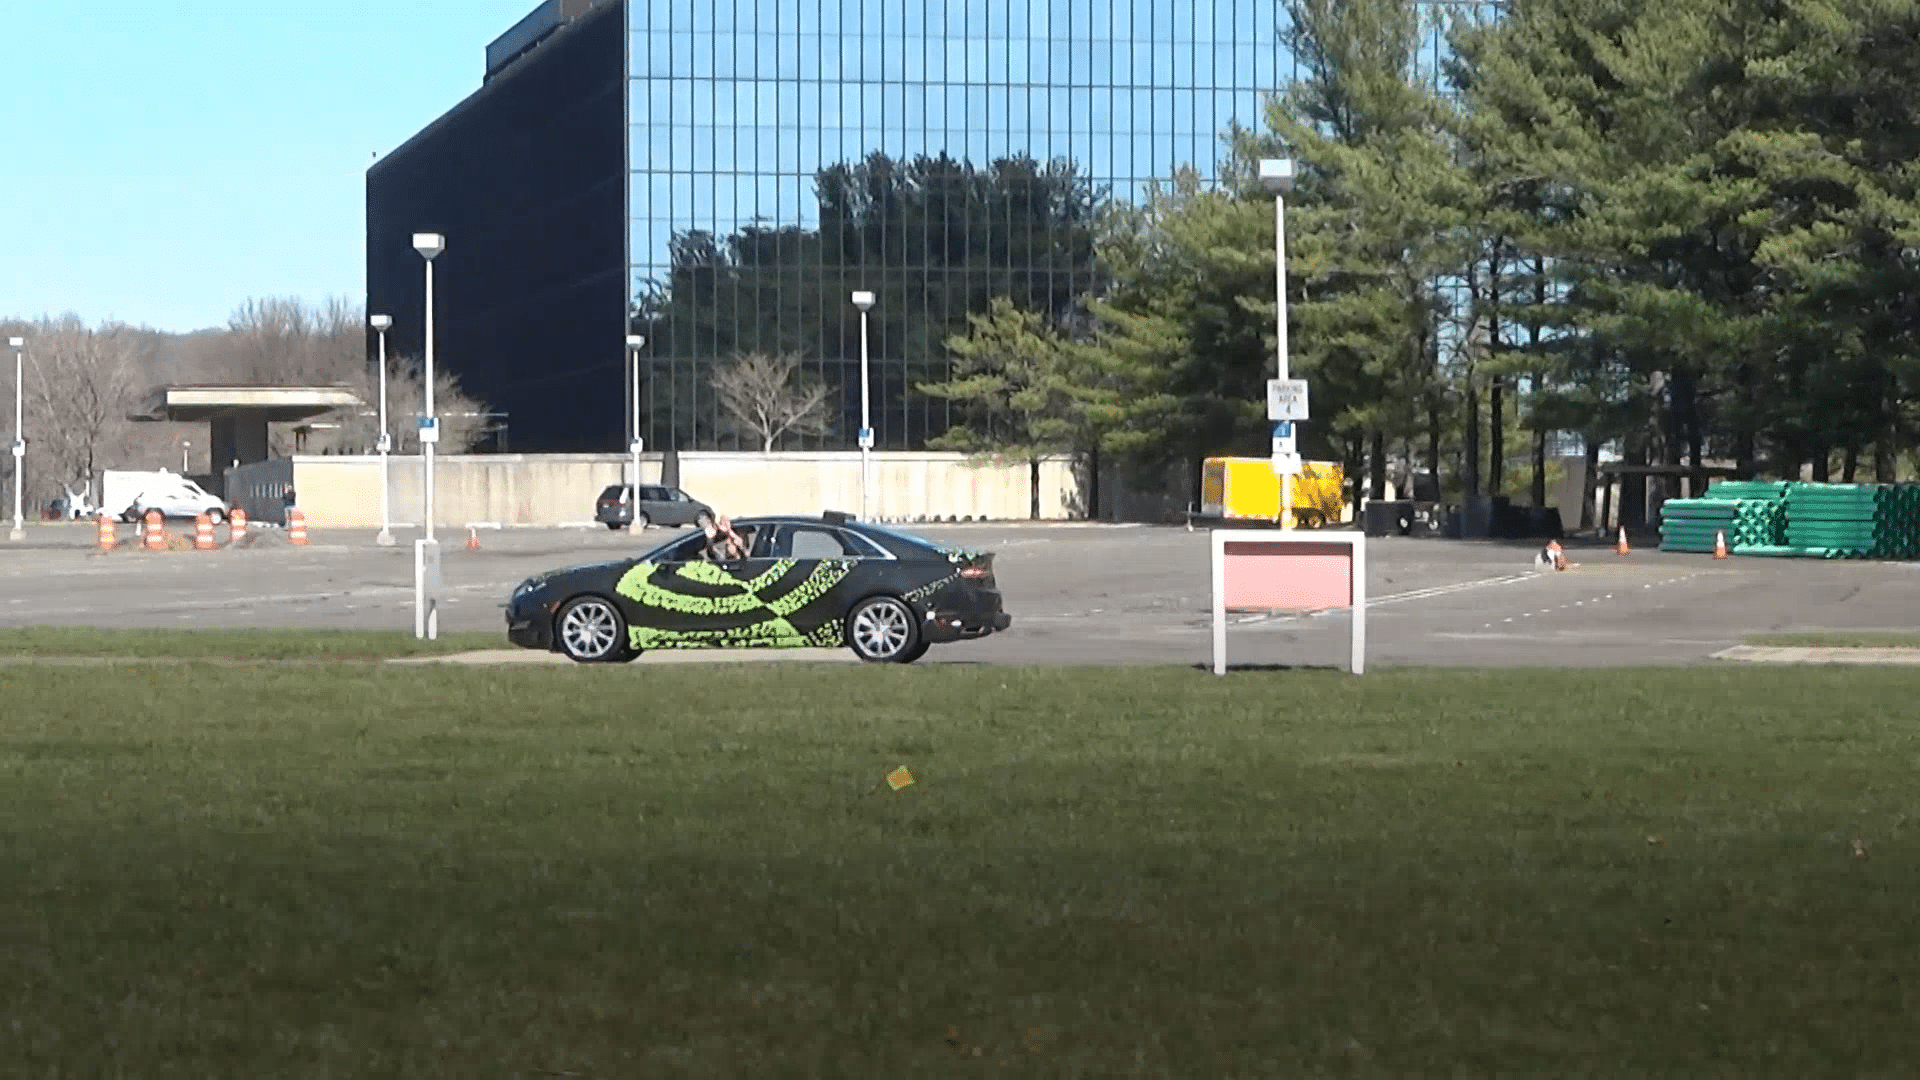 NVIDIA self-driving car, taught with deep learning